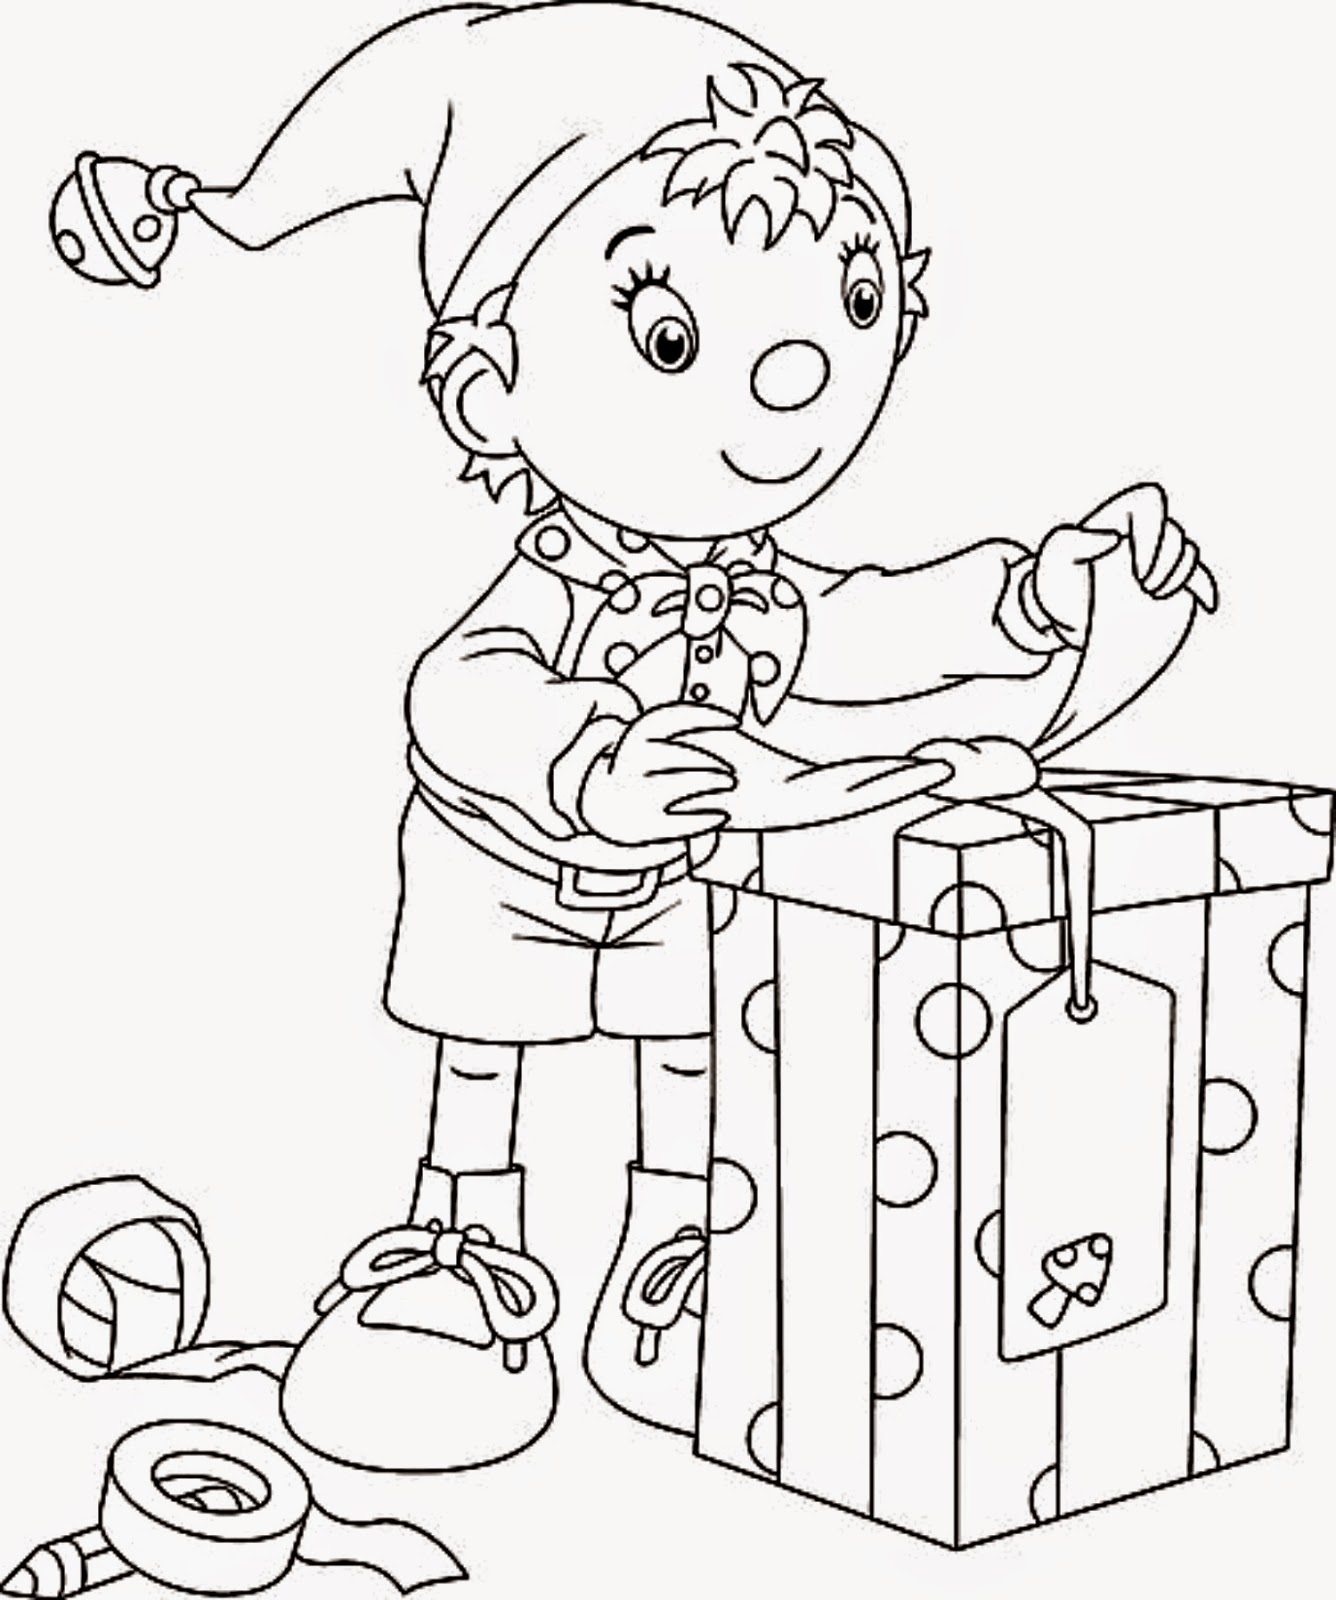 Coloring pages november 2014 for Christmas elf coloring pages